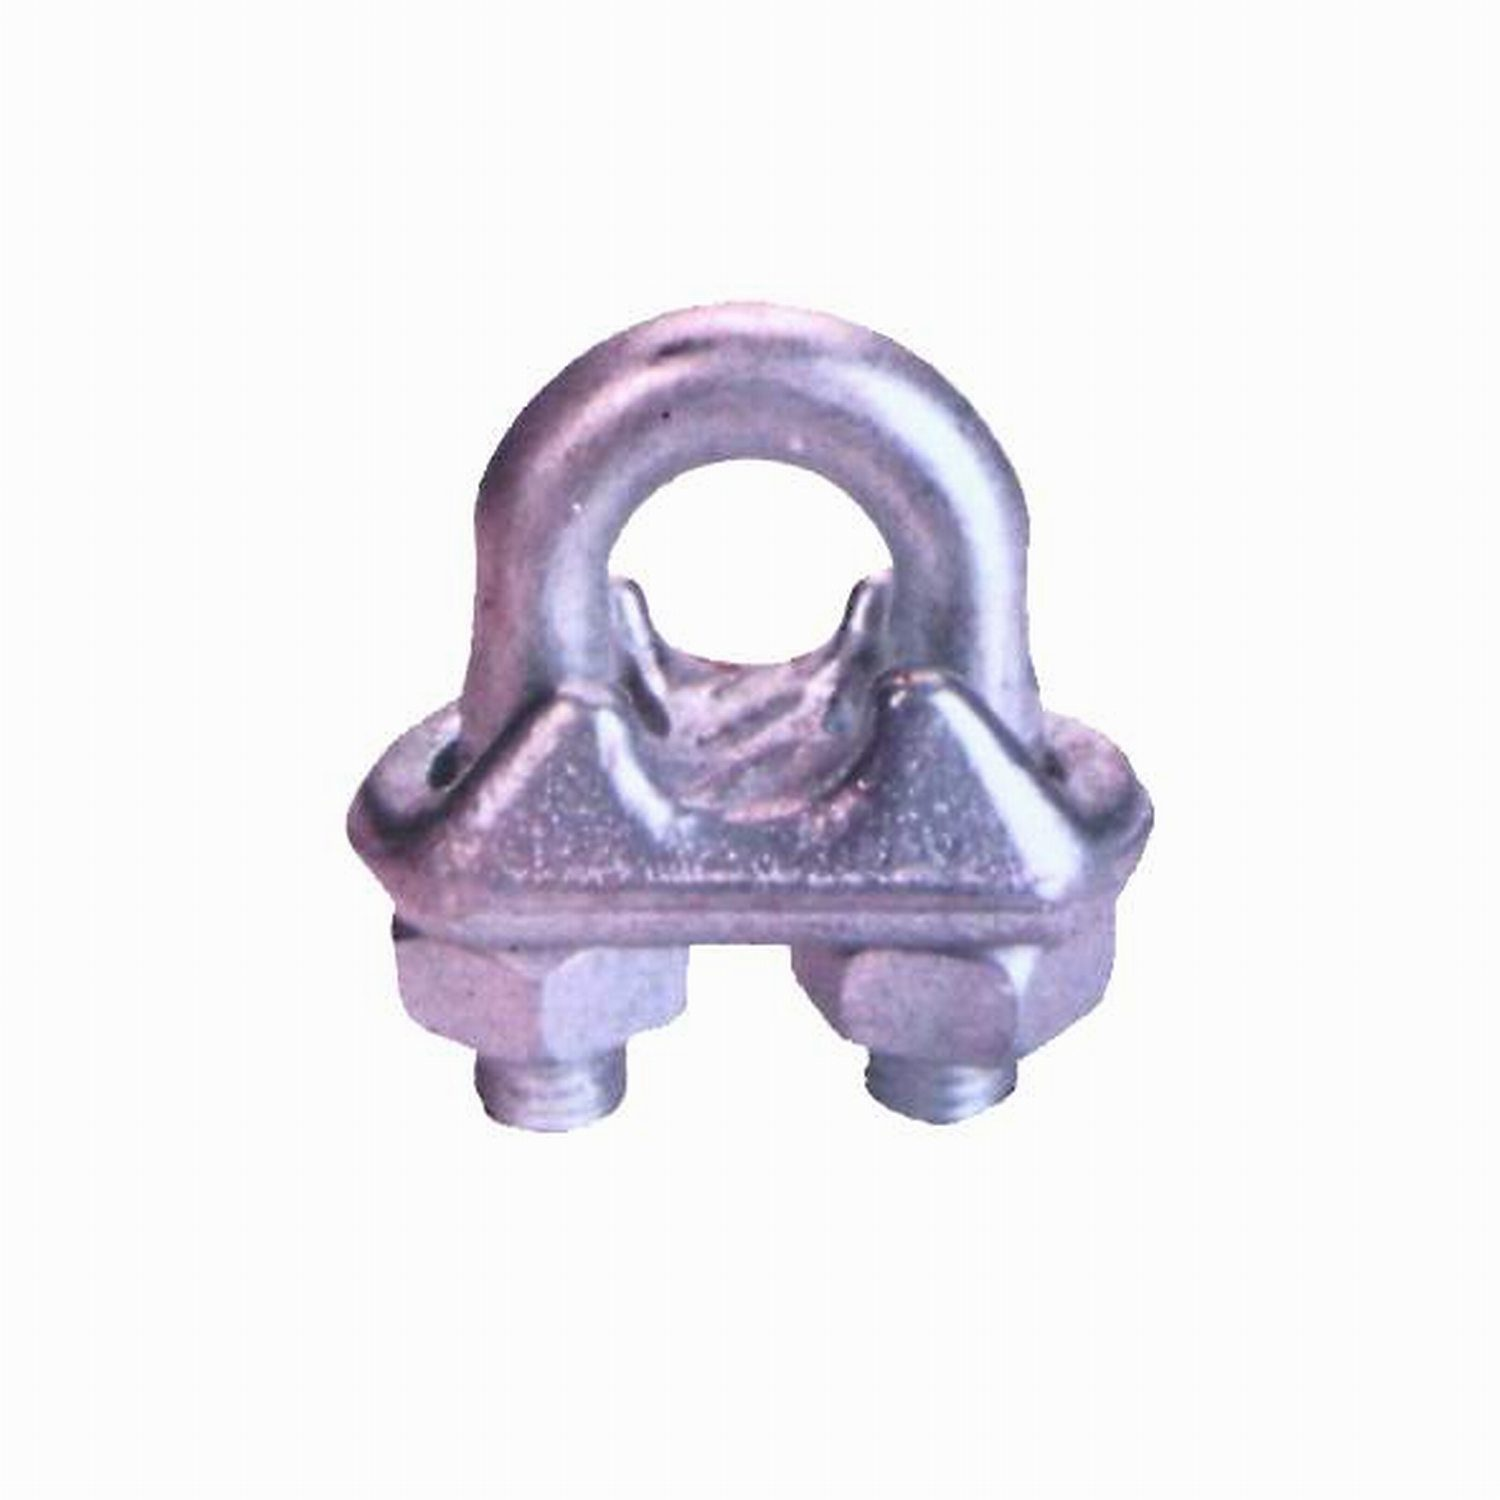 H. D. G. European Type Drop Forged Wire Rope Clip